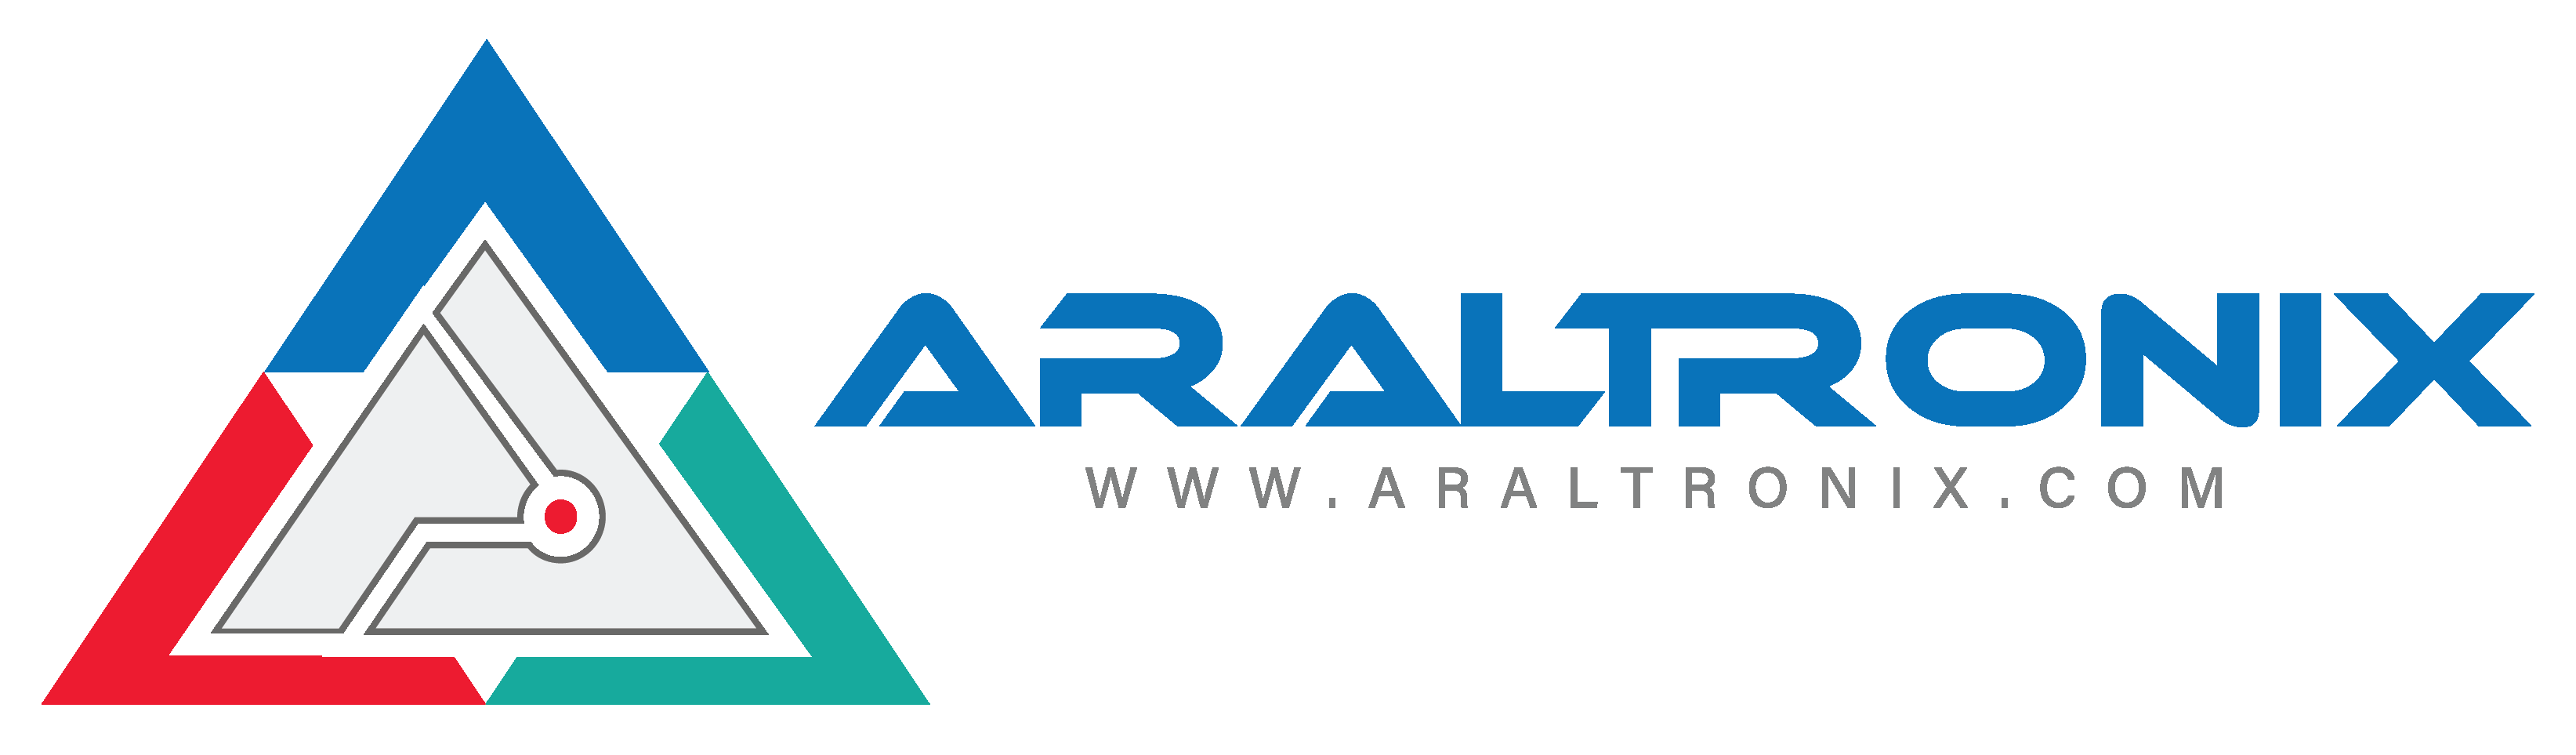 Araltronix Digital Learning Portal